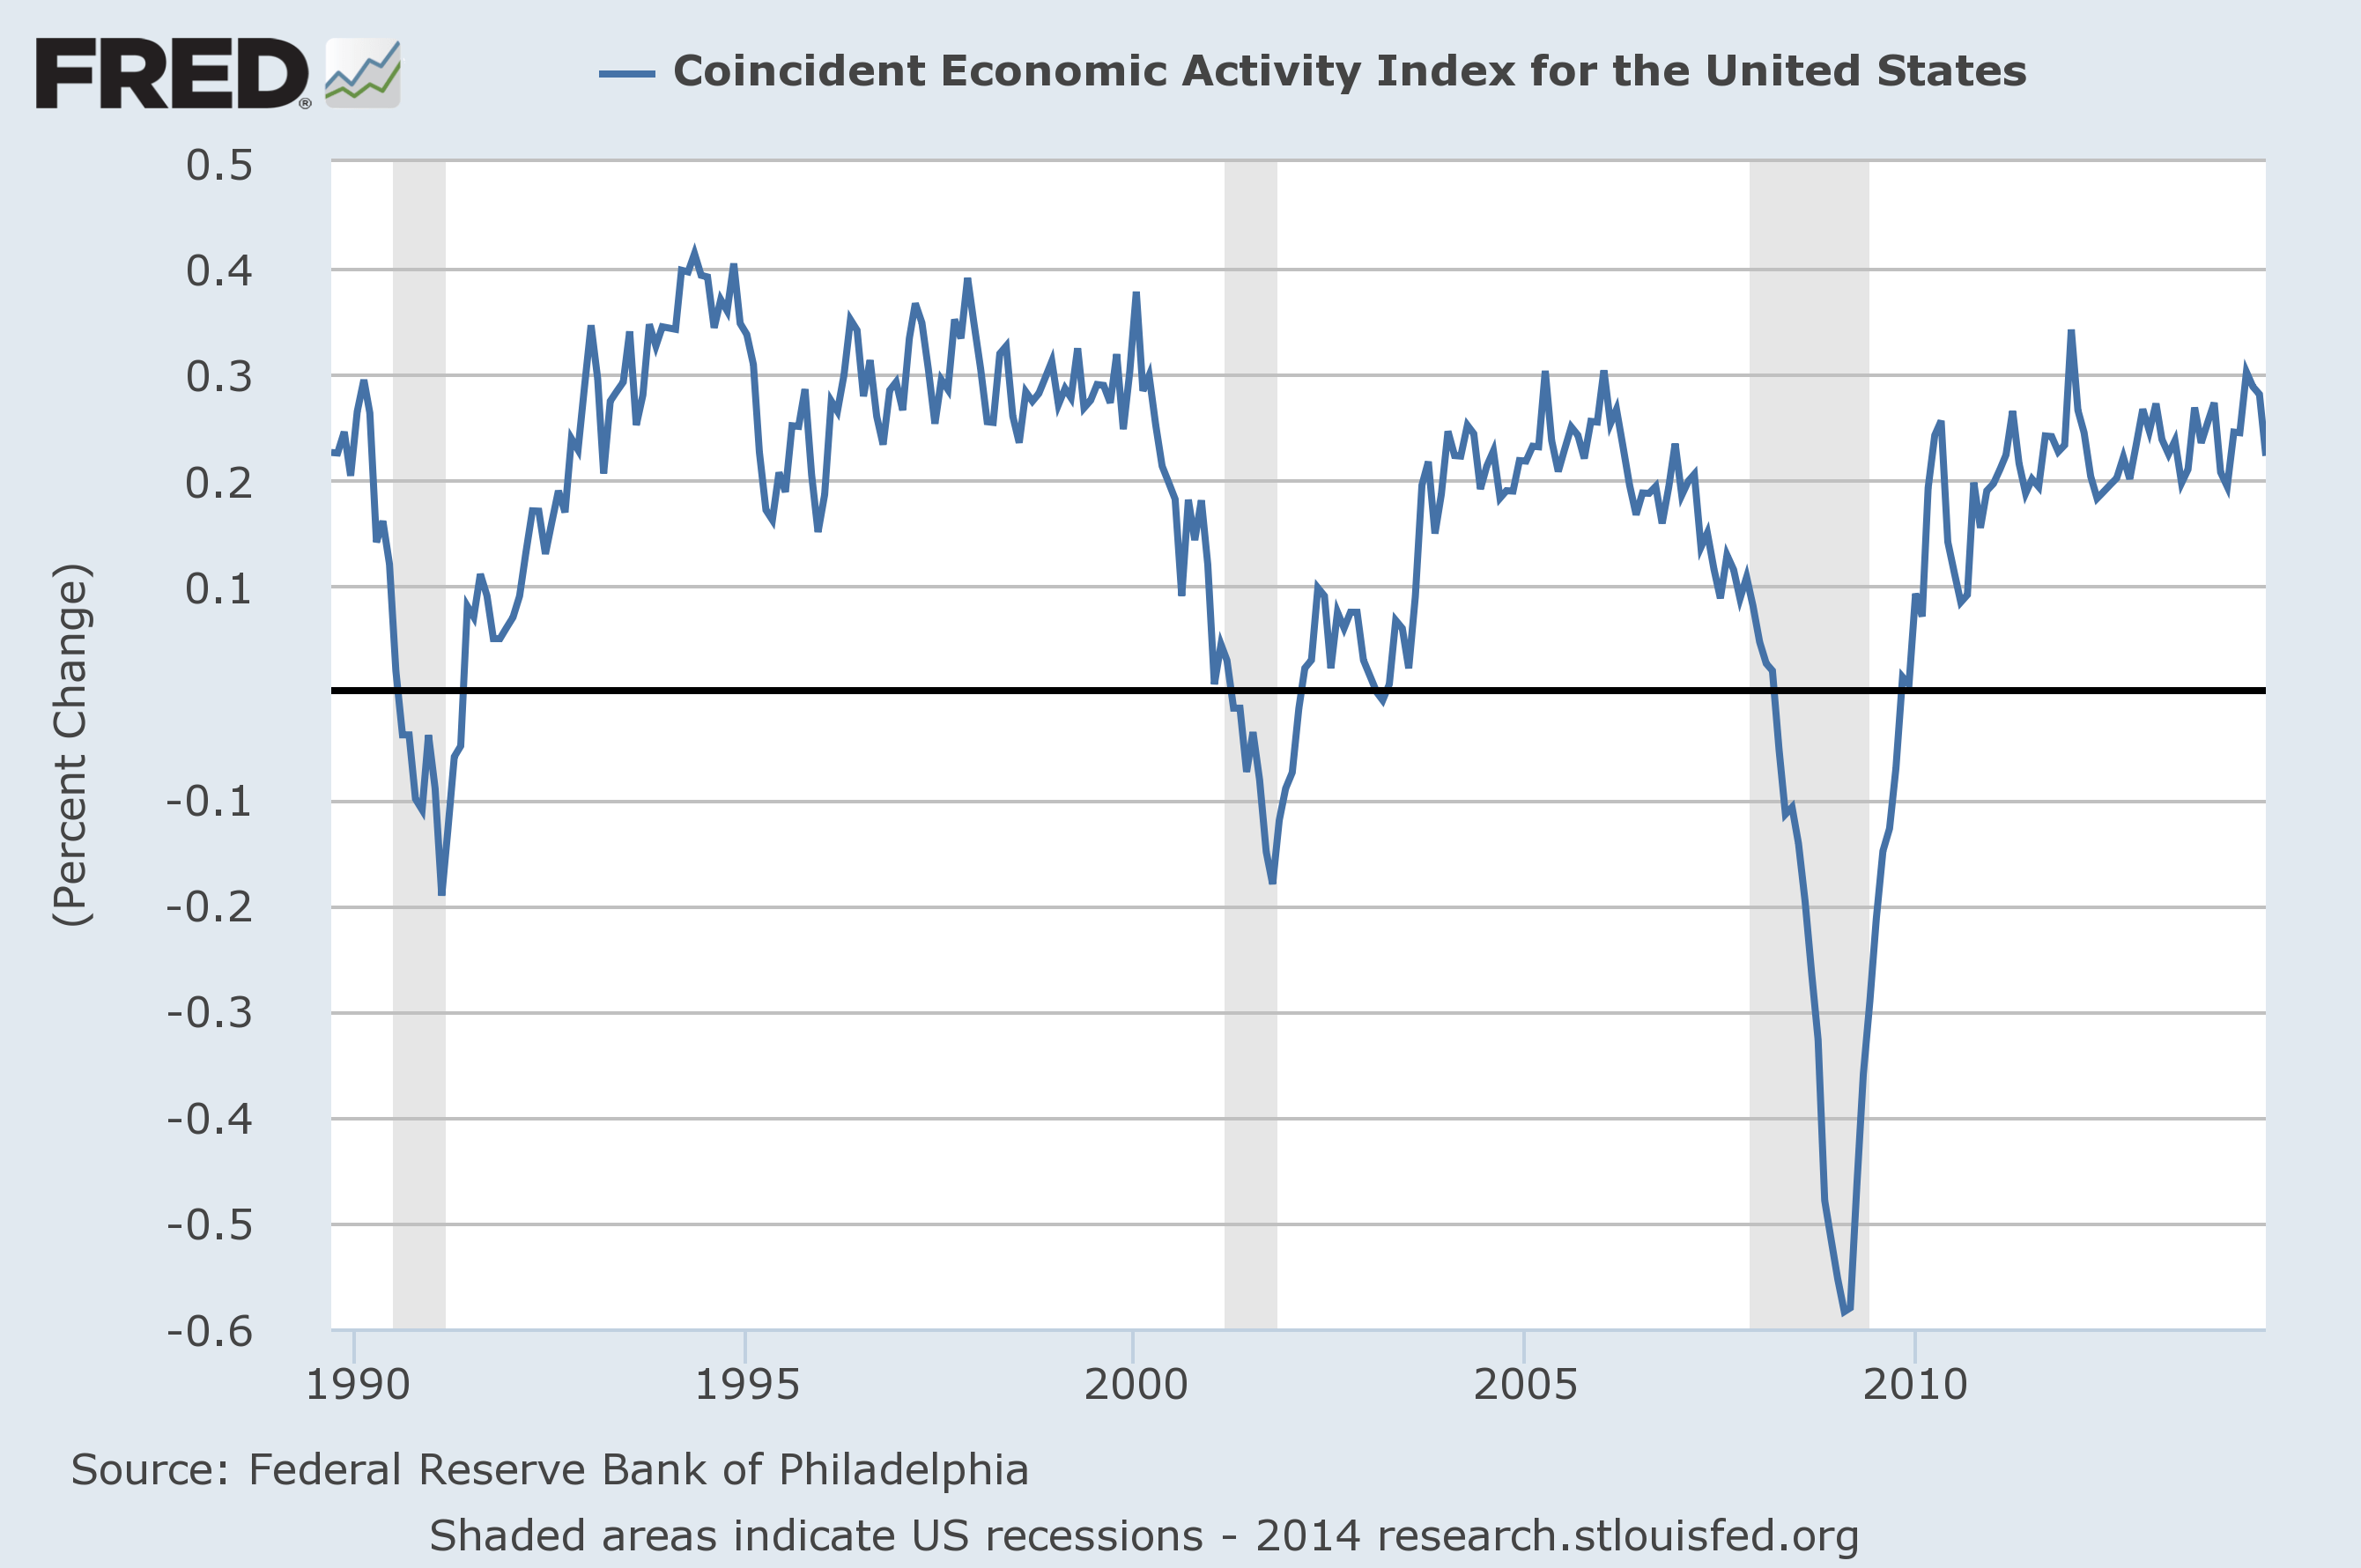 Coincident Economic Activity Index